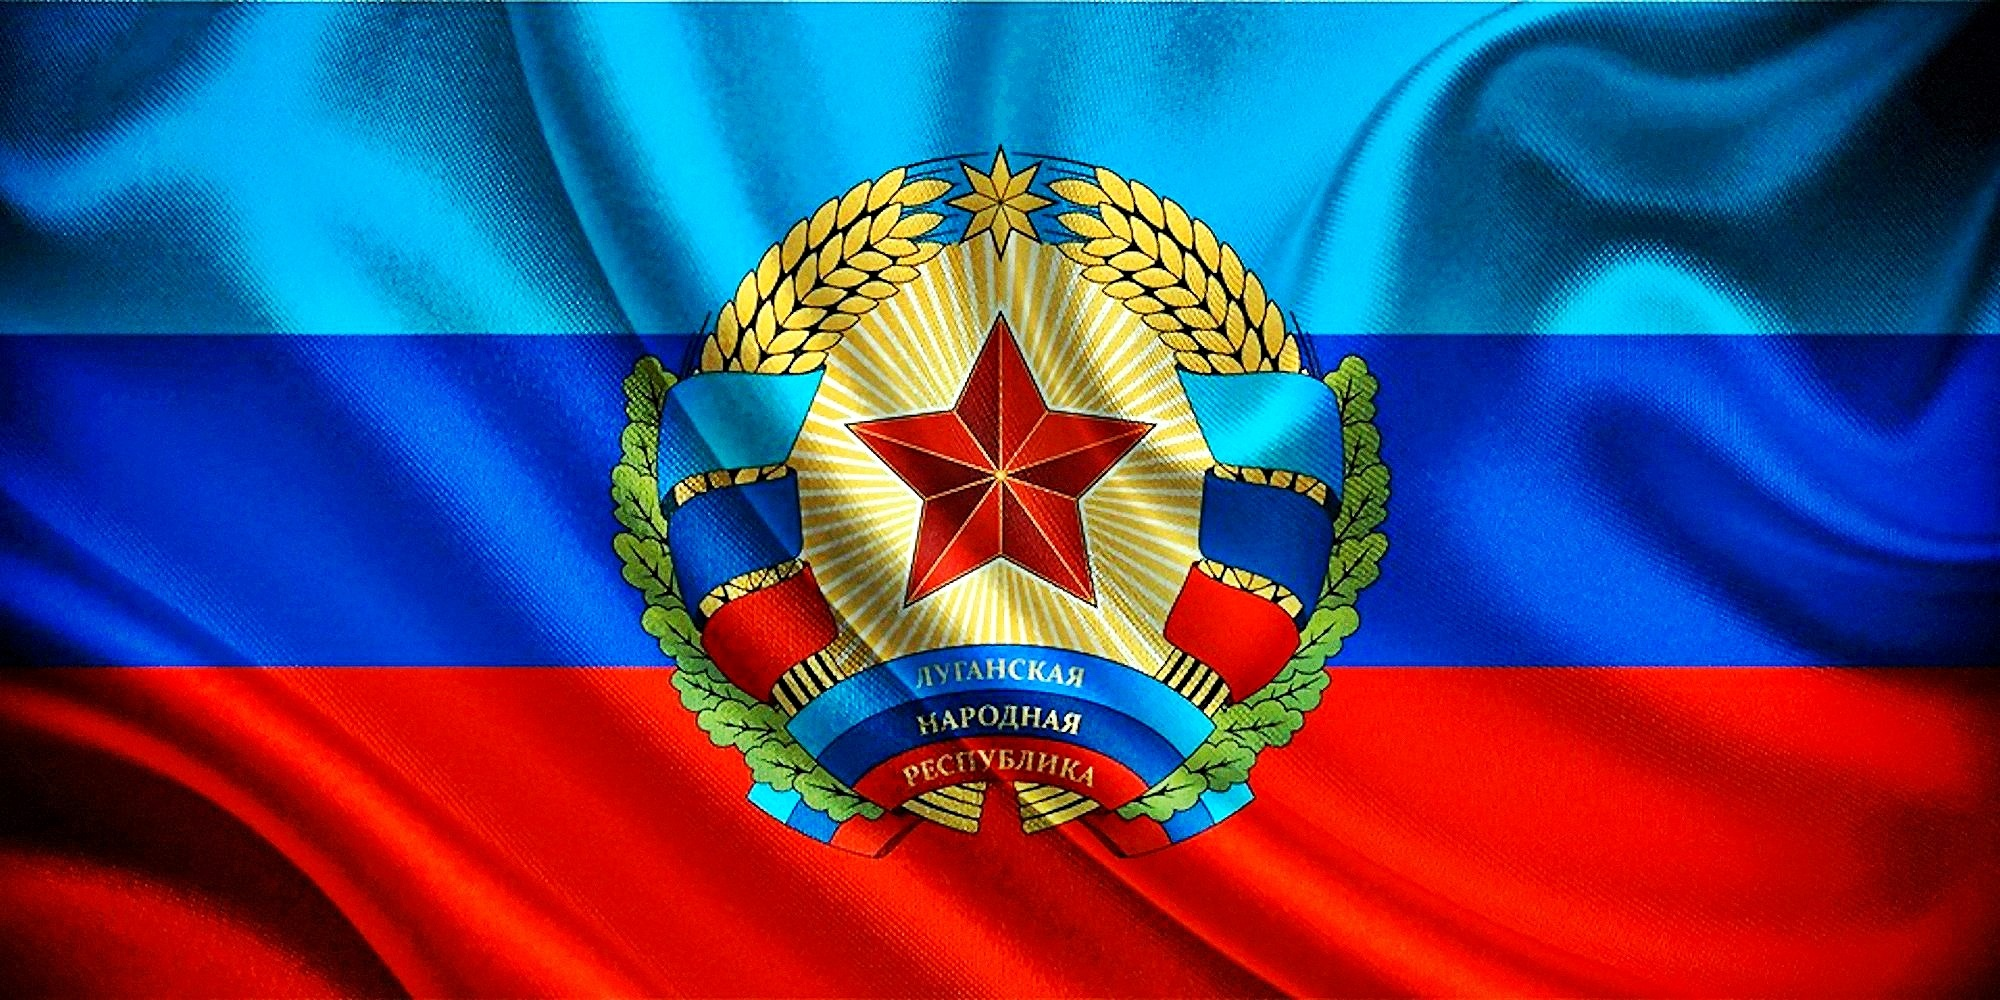 00 LNR lugansk peoples republic flag 020116